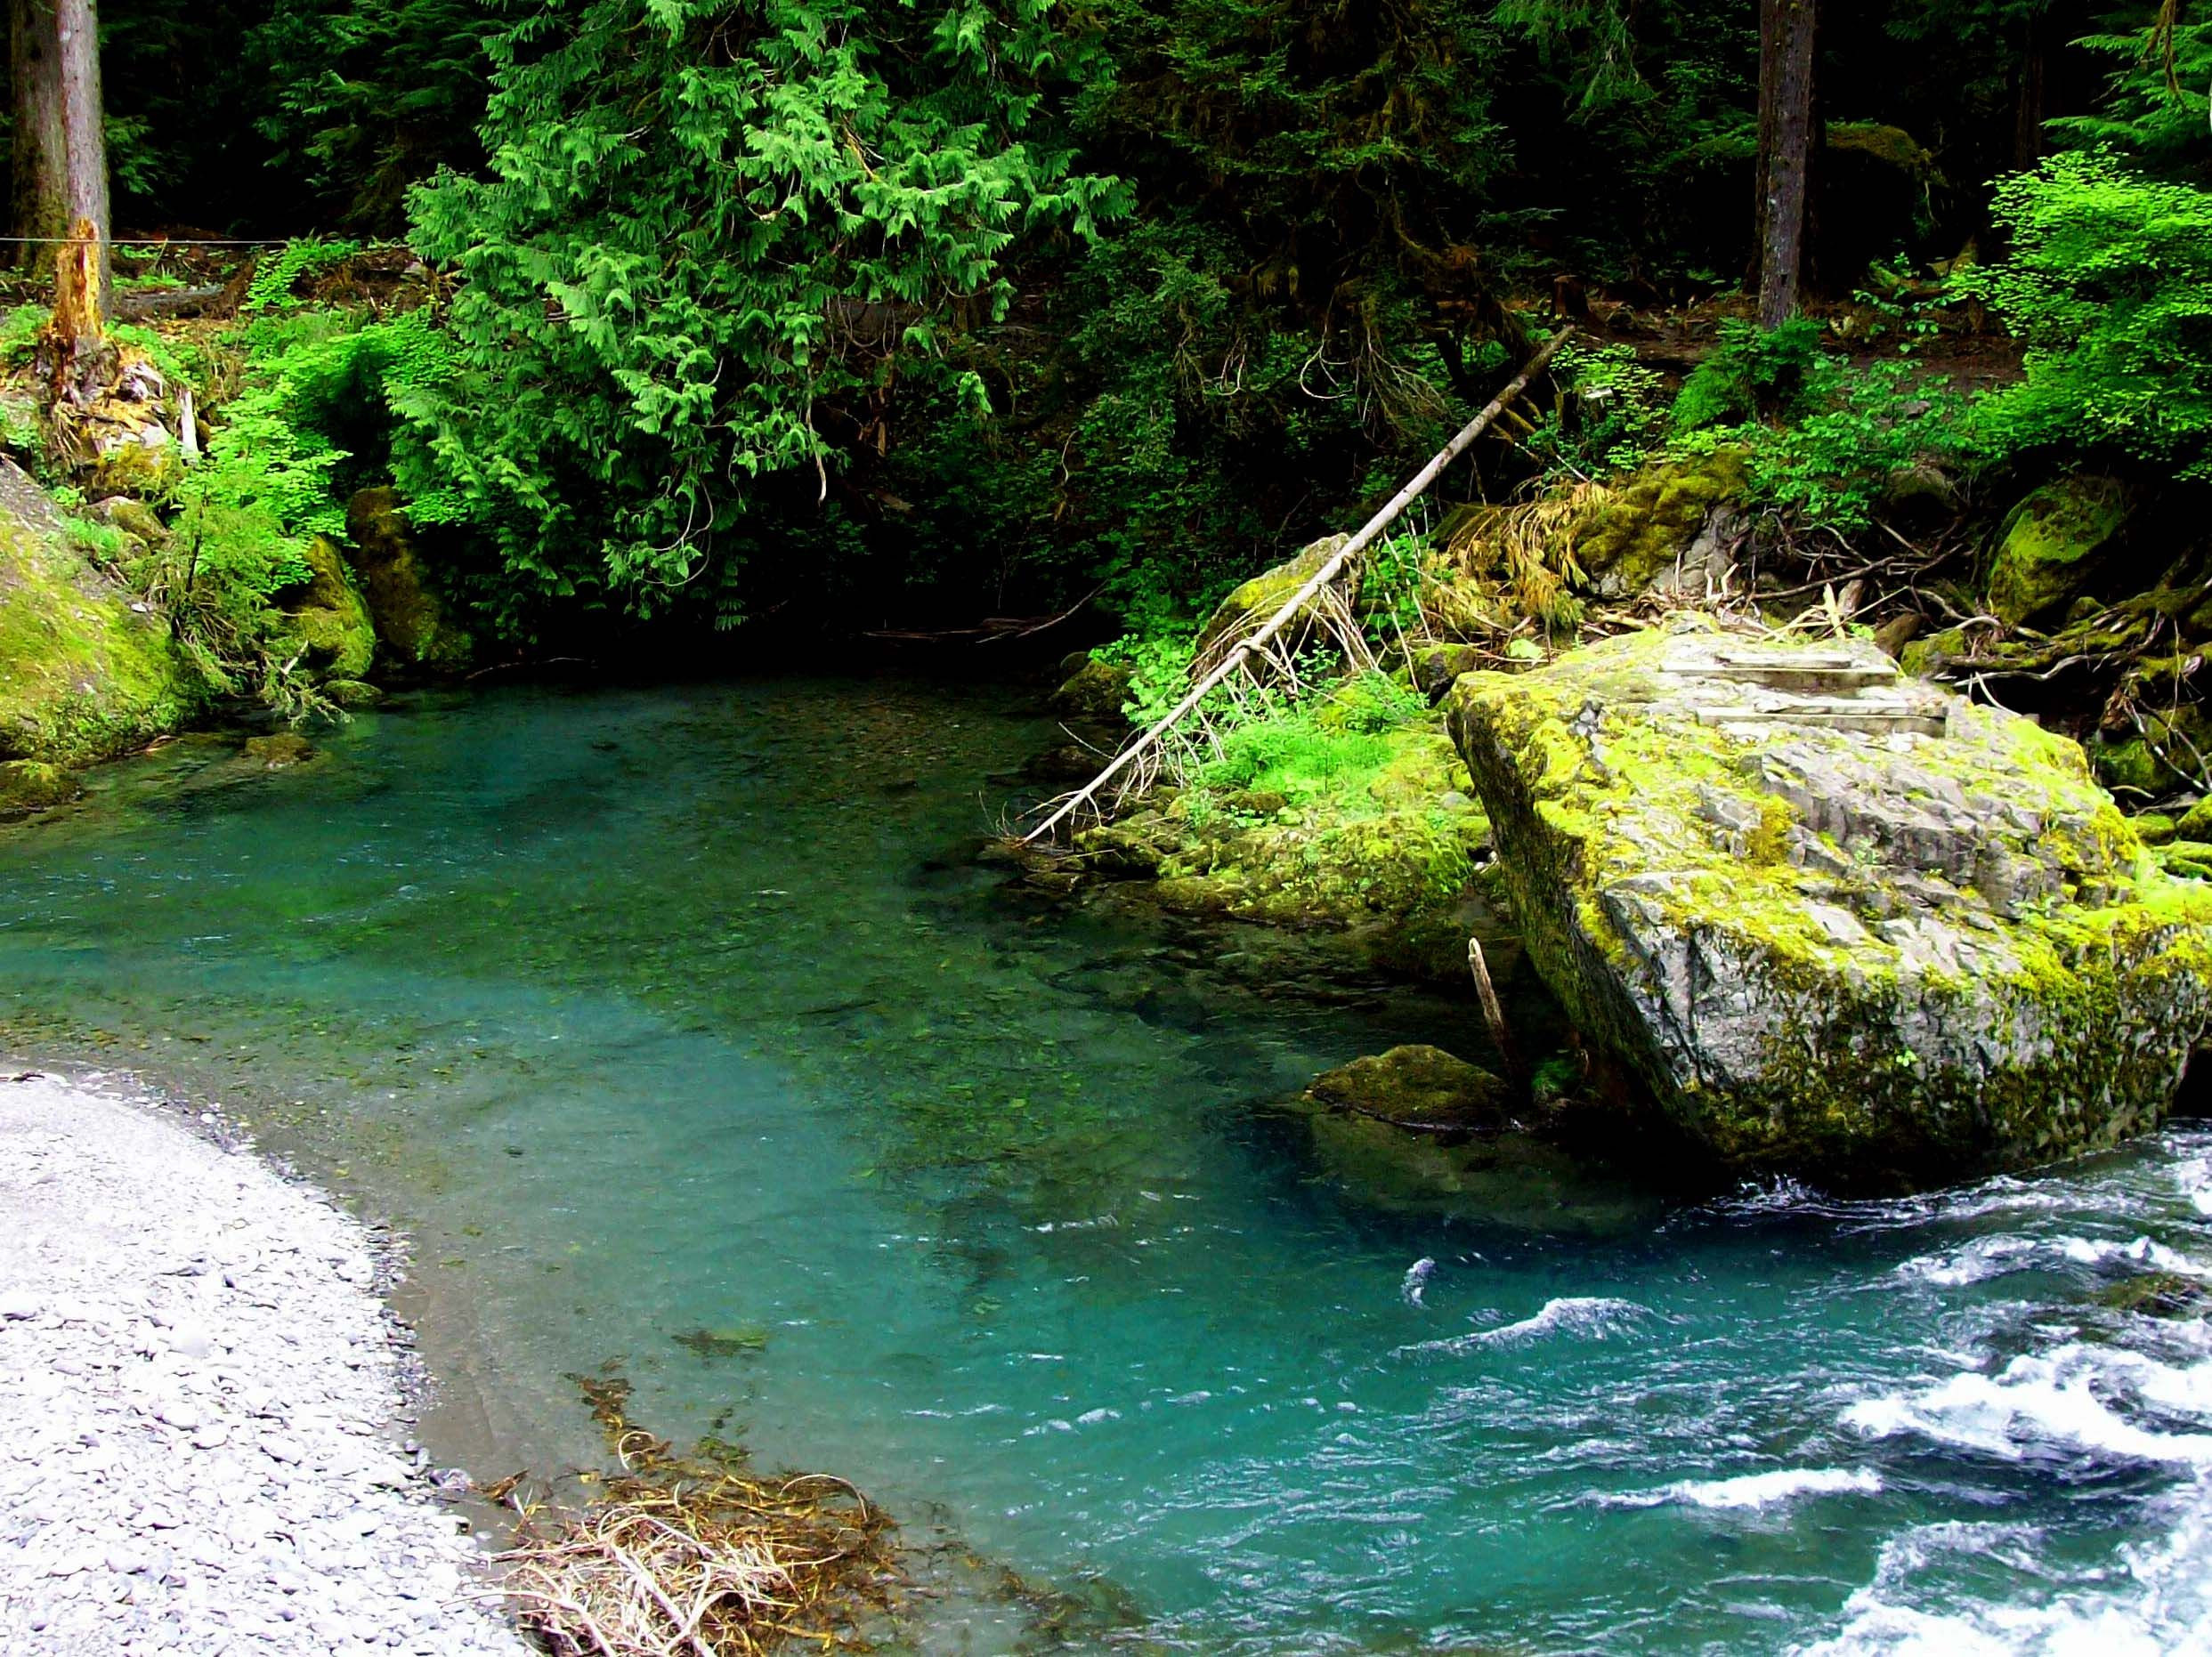 Best ideas about Staircase Olympic National Park . Save or Pin Olympic National Park Skokomish River Staircase Now.